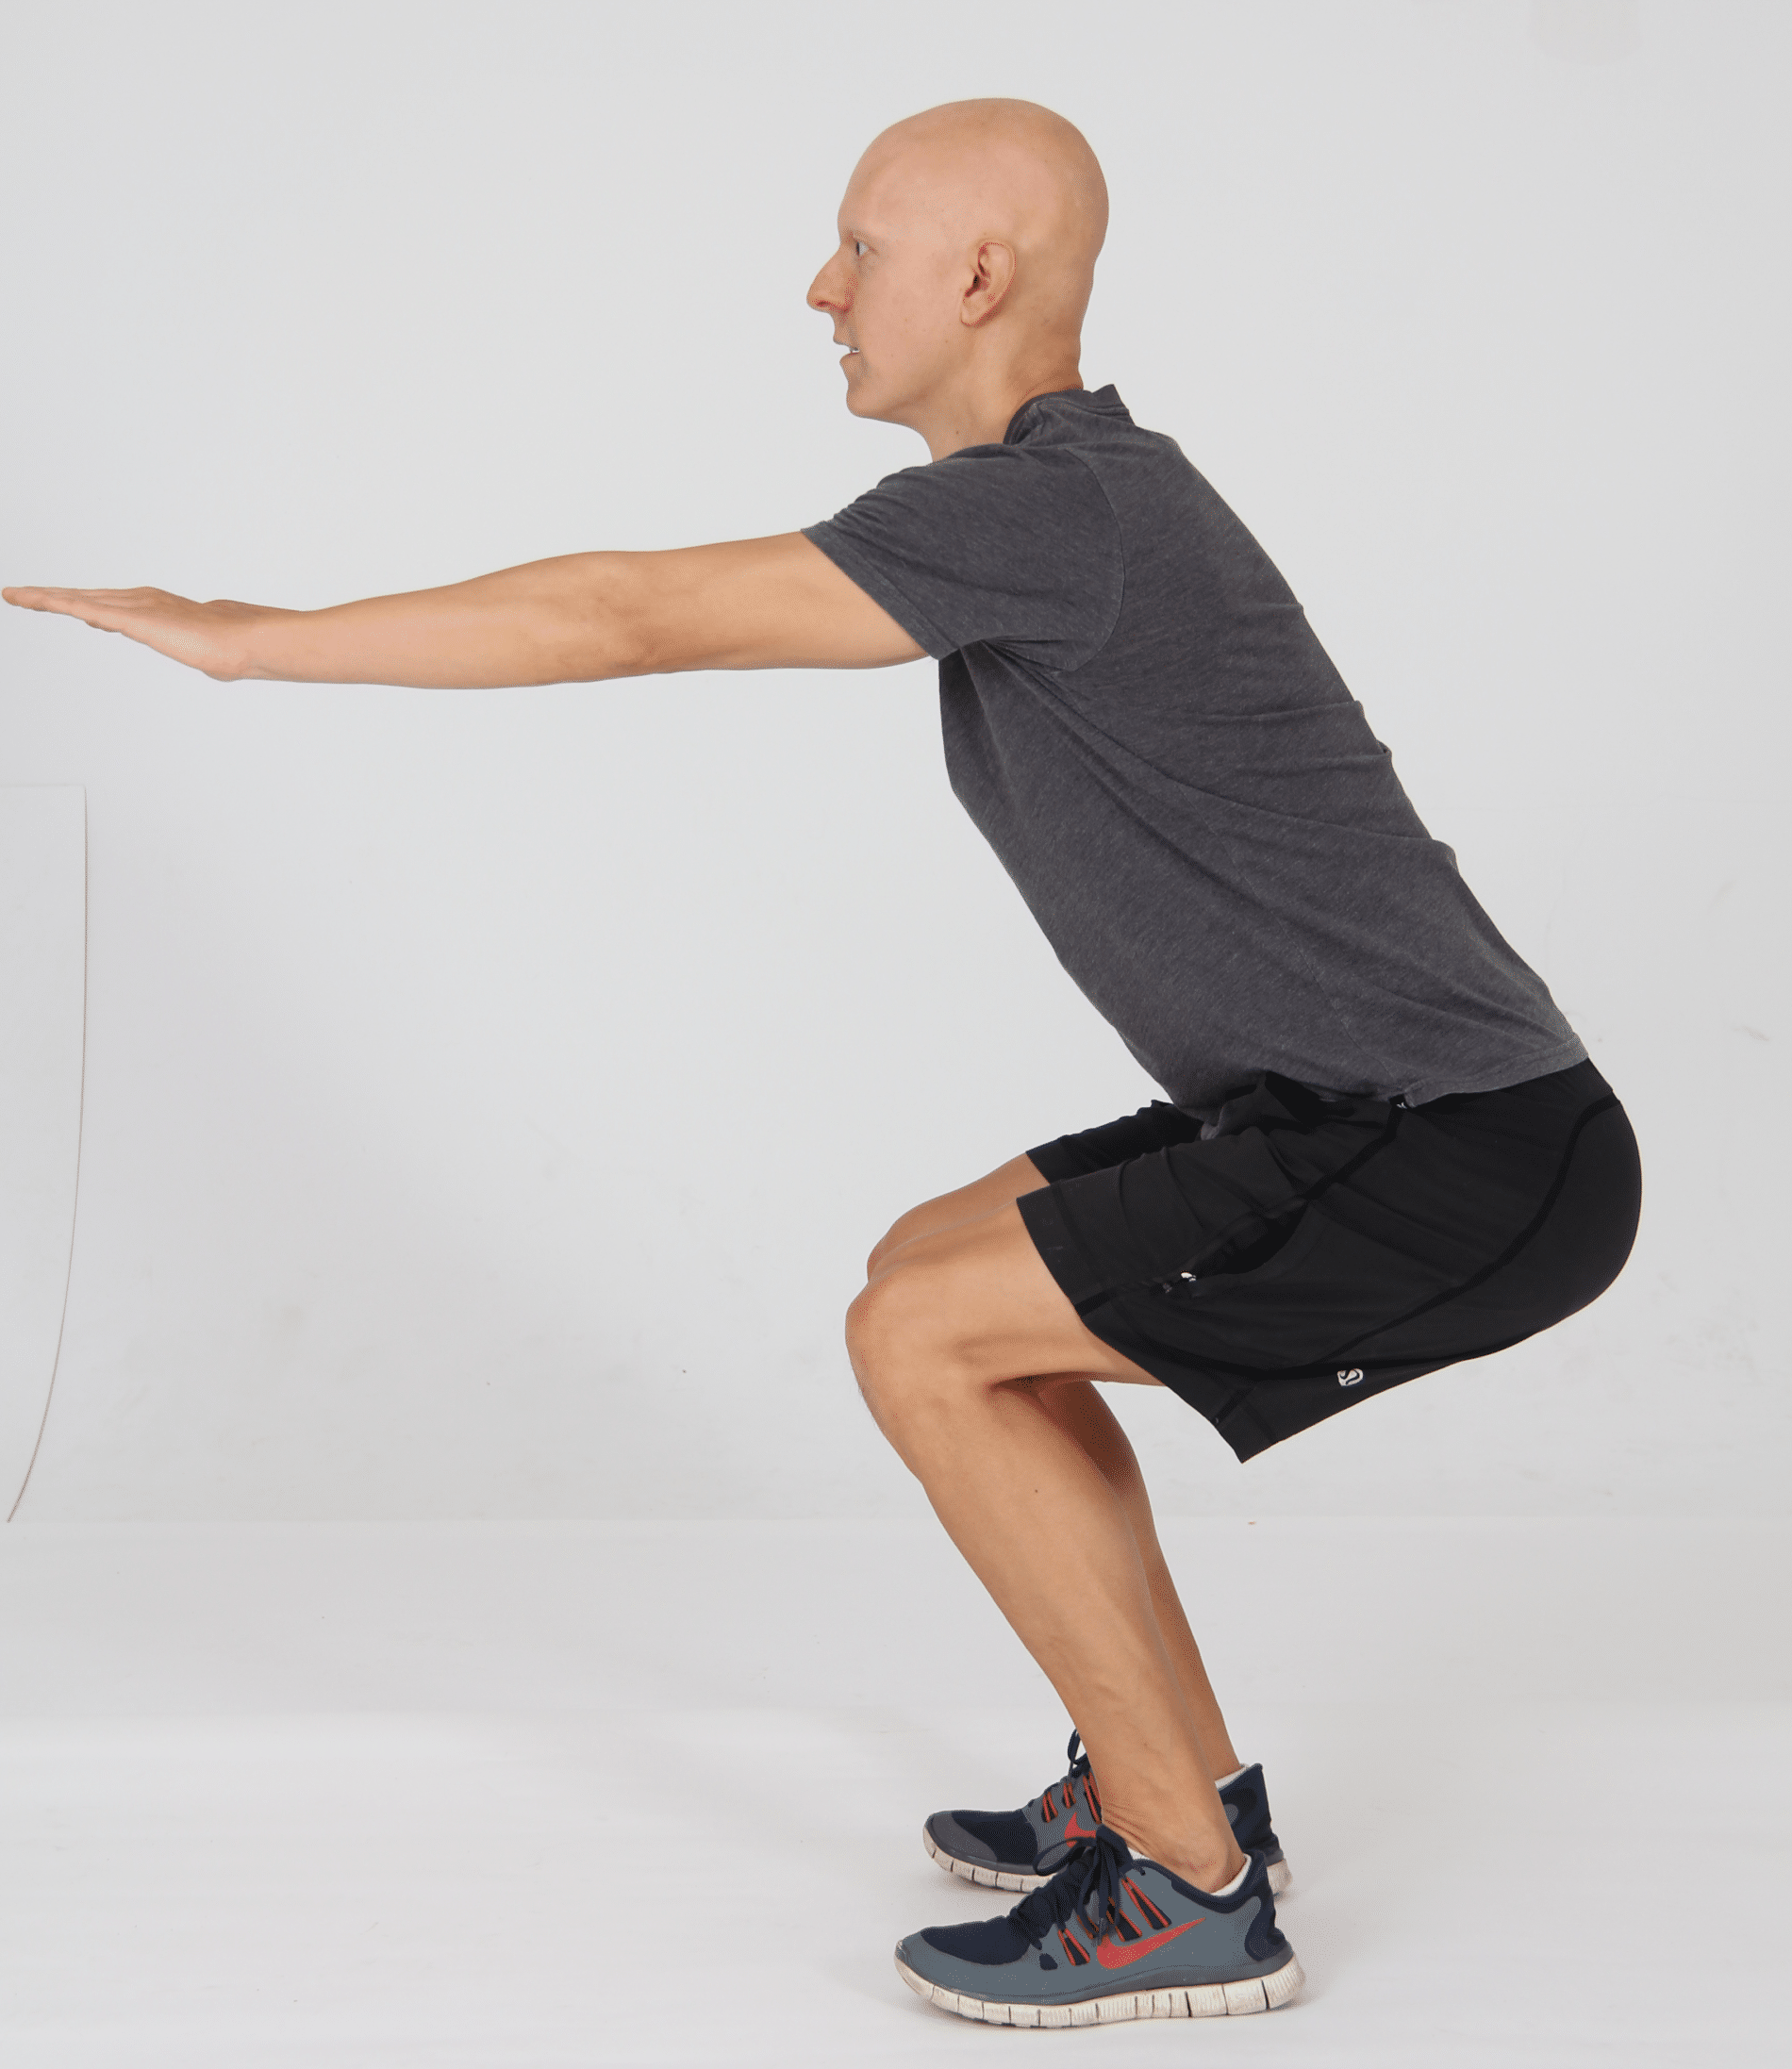 15 Best Bodyweight Exercises - Air Chair